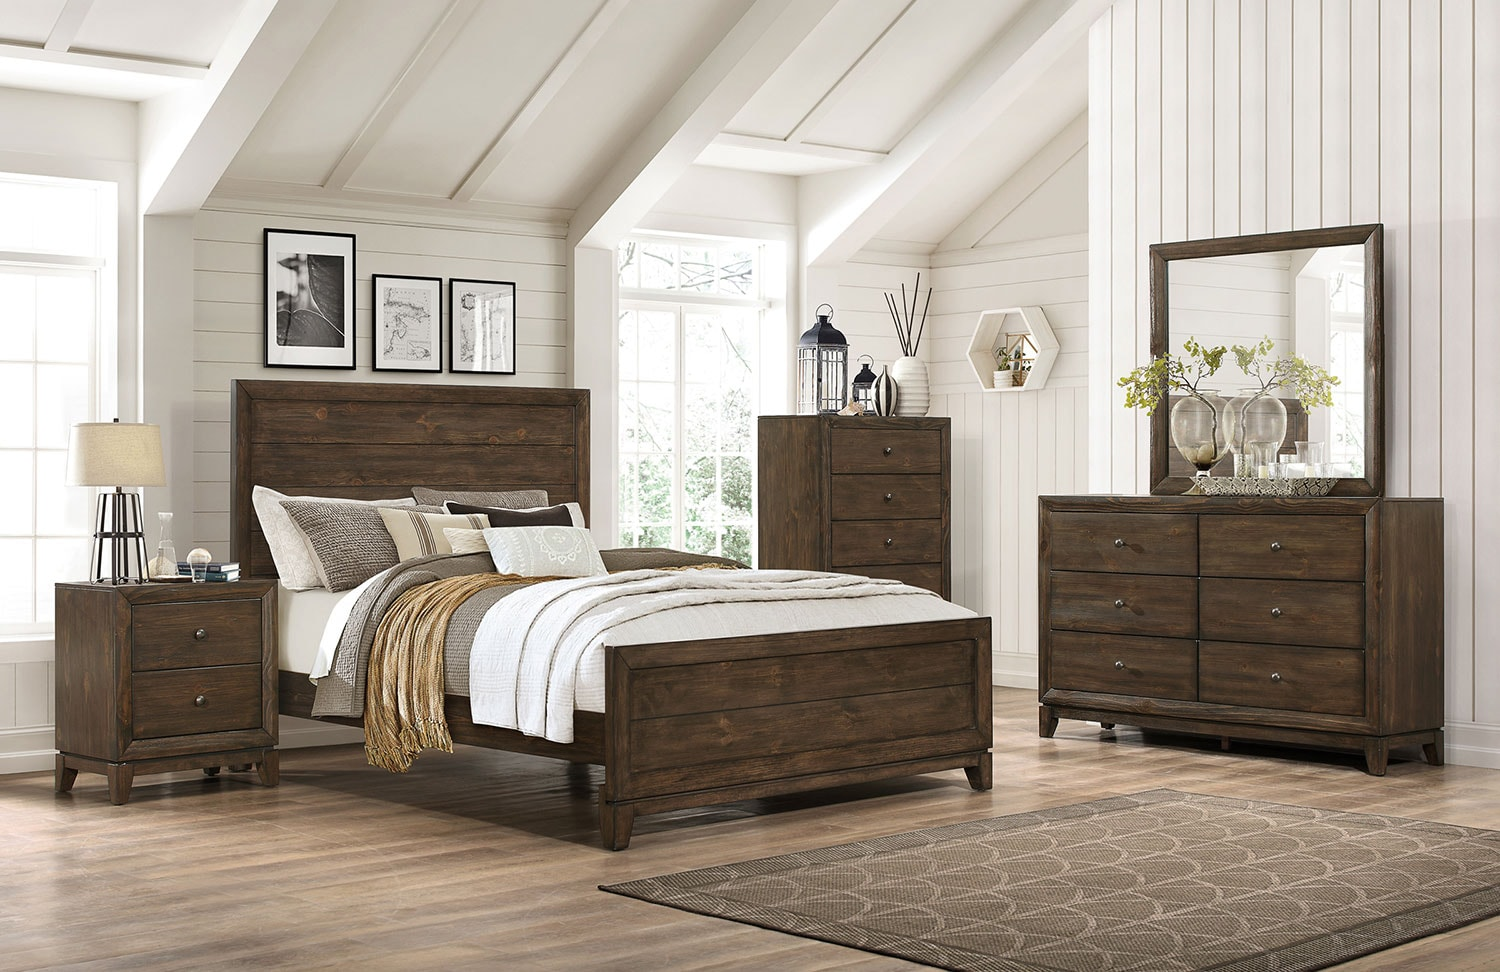 The Tacoma Bedroom Collection